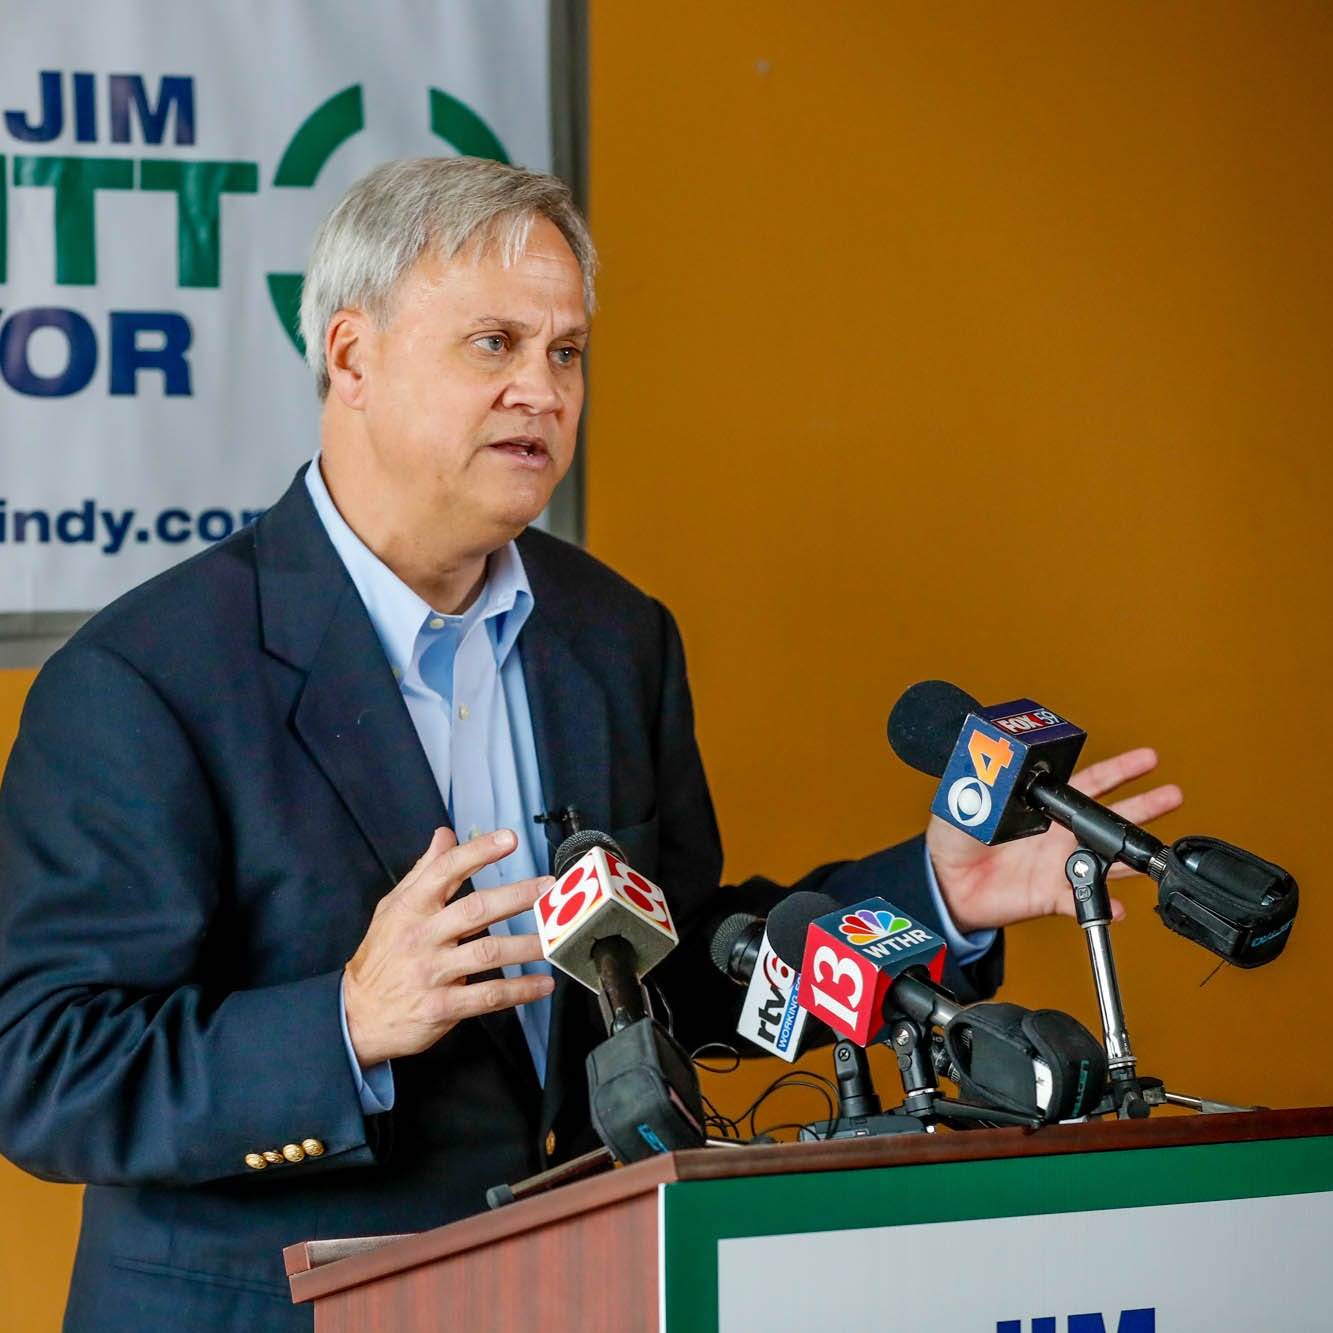 Swarens: Jim Merritt, in running for mayor, gives Indianapolis the debate it needs